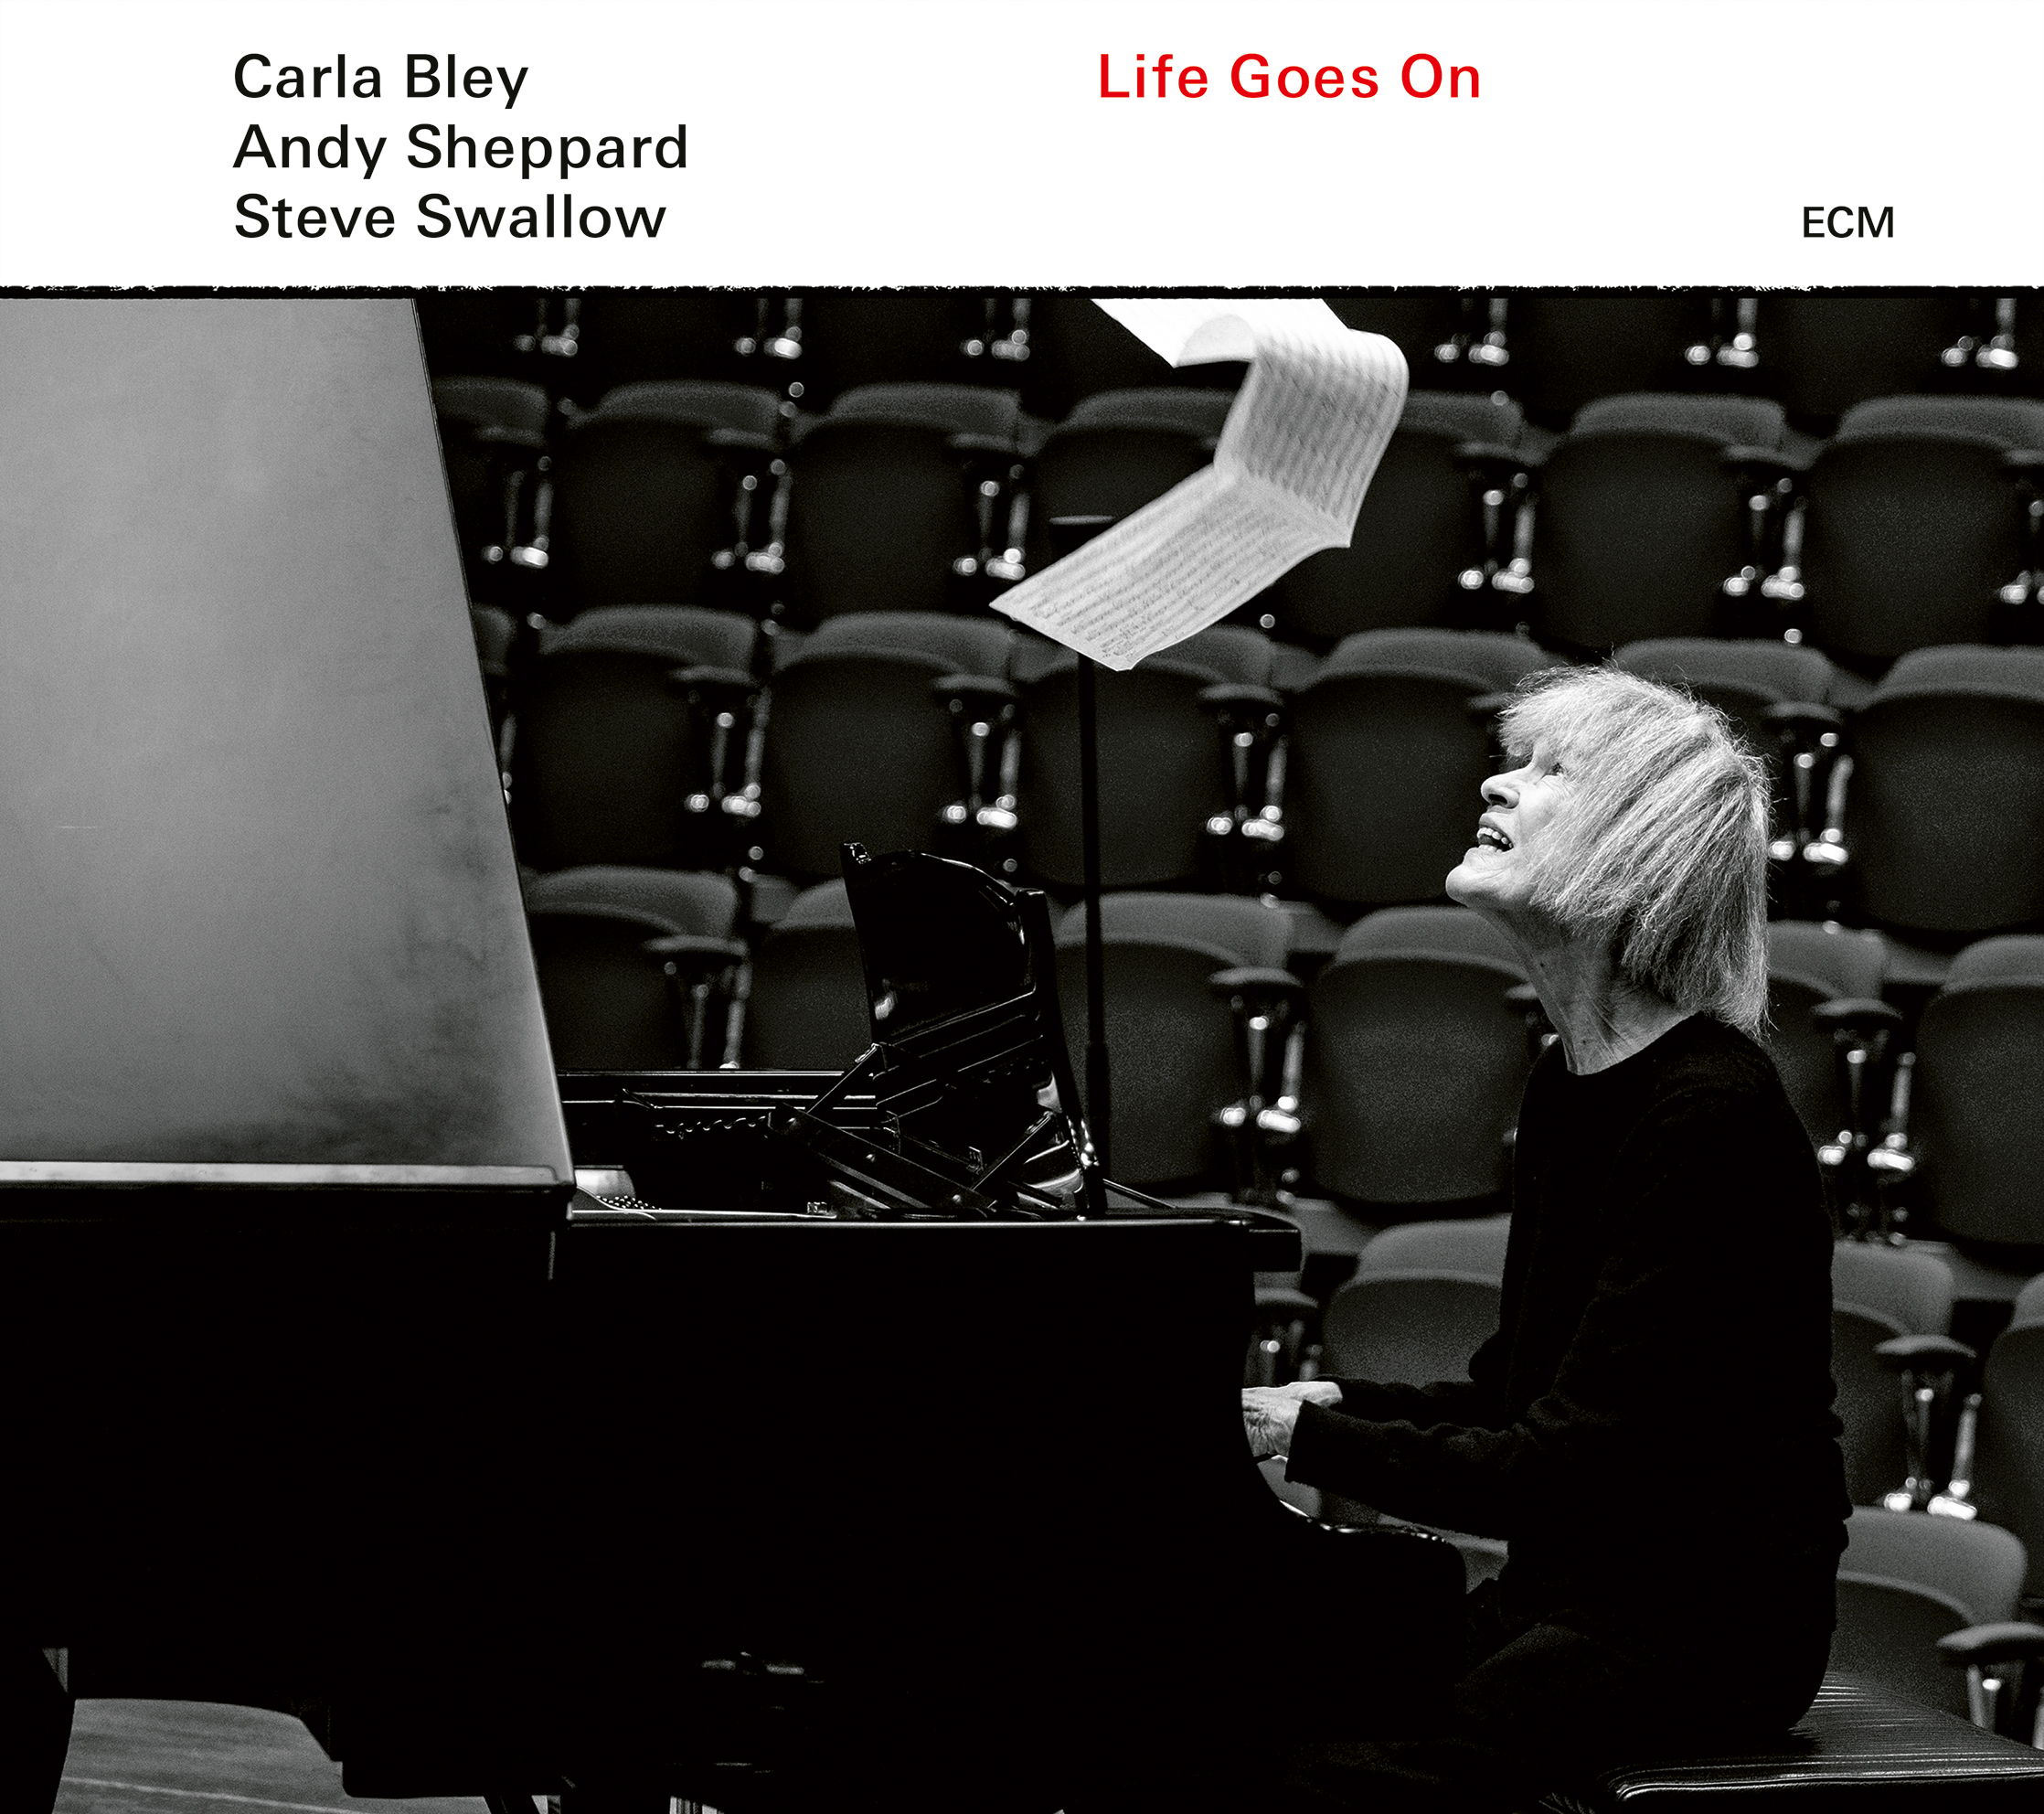 Image result for Carla Bley, Andy Sheppard, Steve Swallow - Life Goes On""